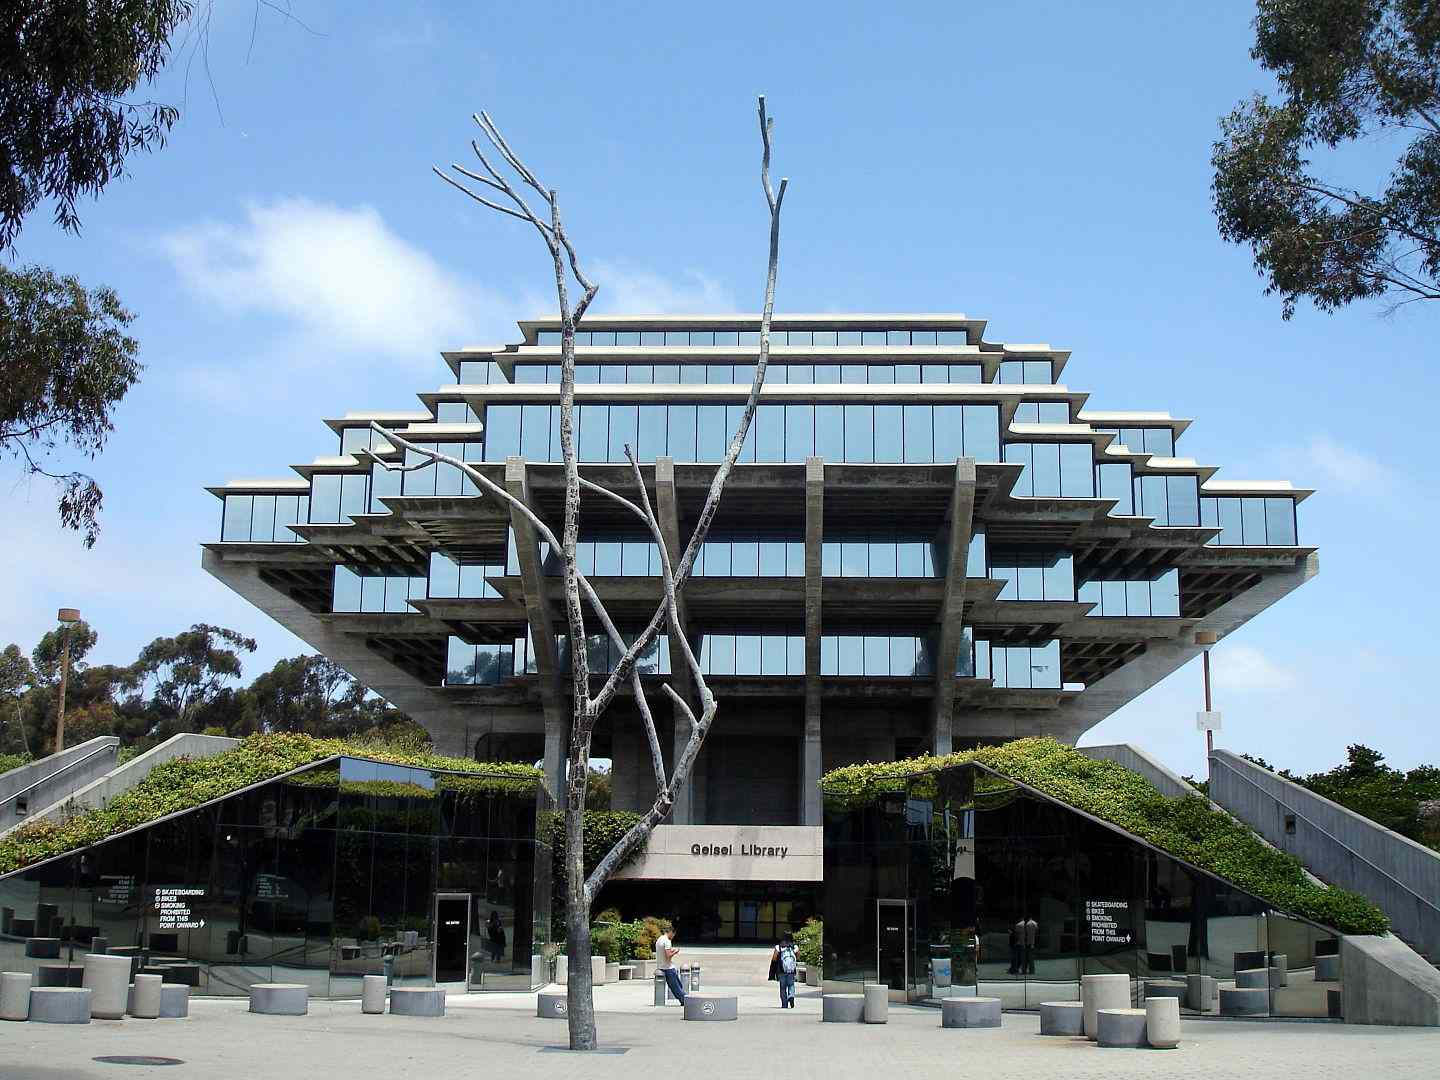 The Geisel Library at UC San Diego on a sunny day.